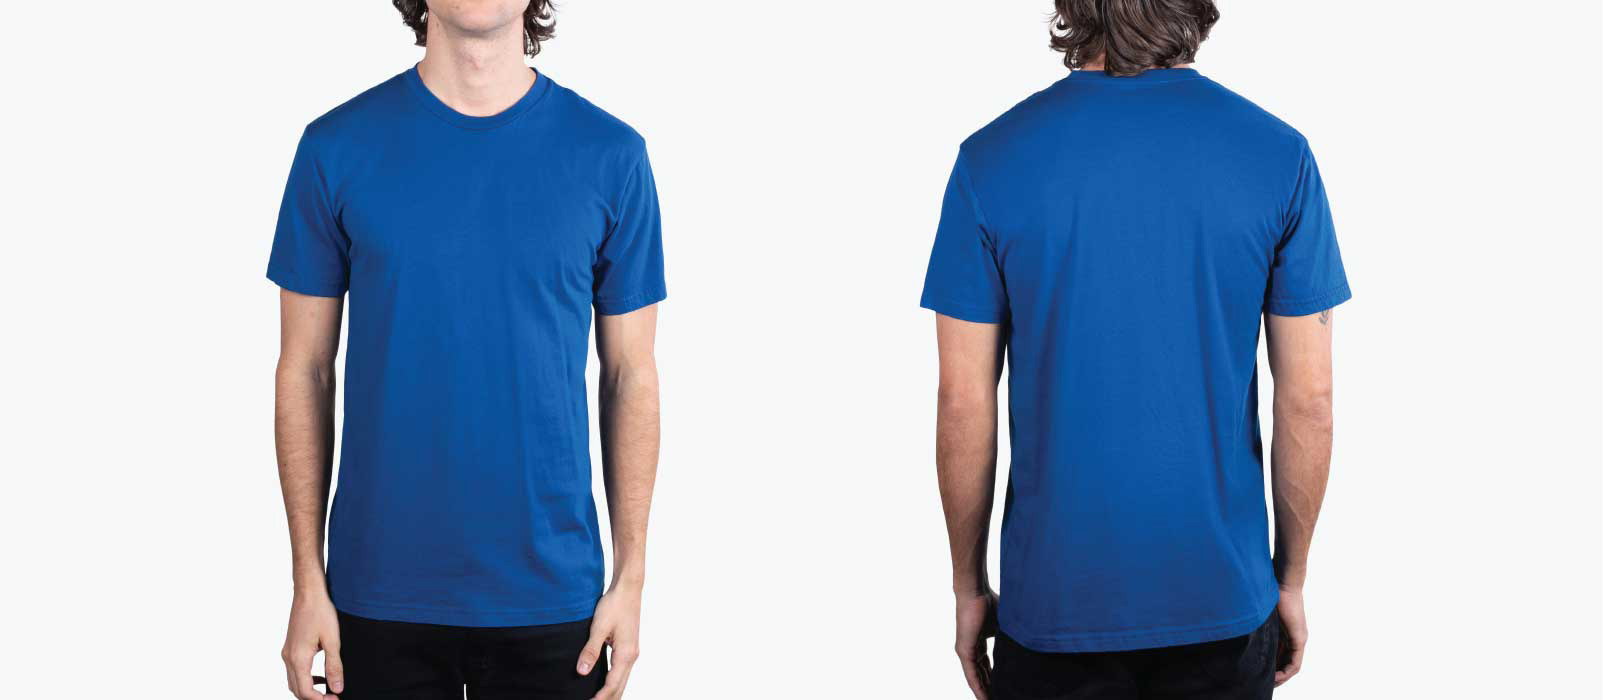 front and back image of man wearing cool blue shirt